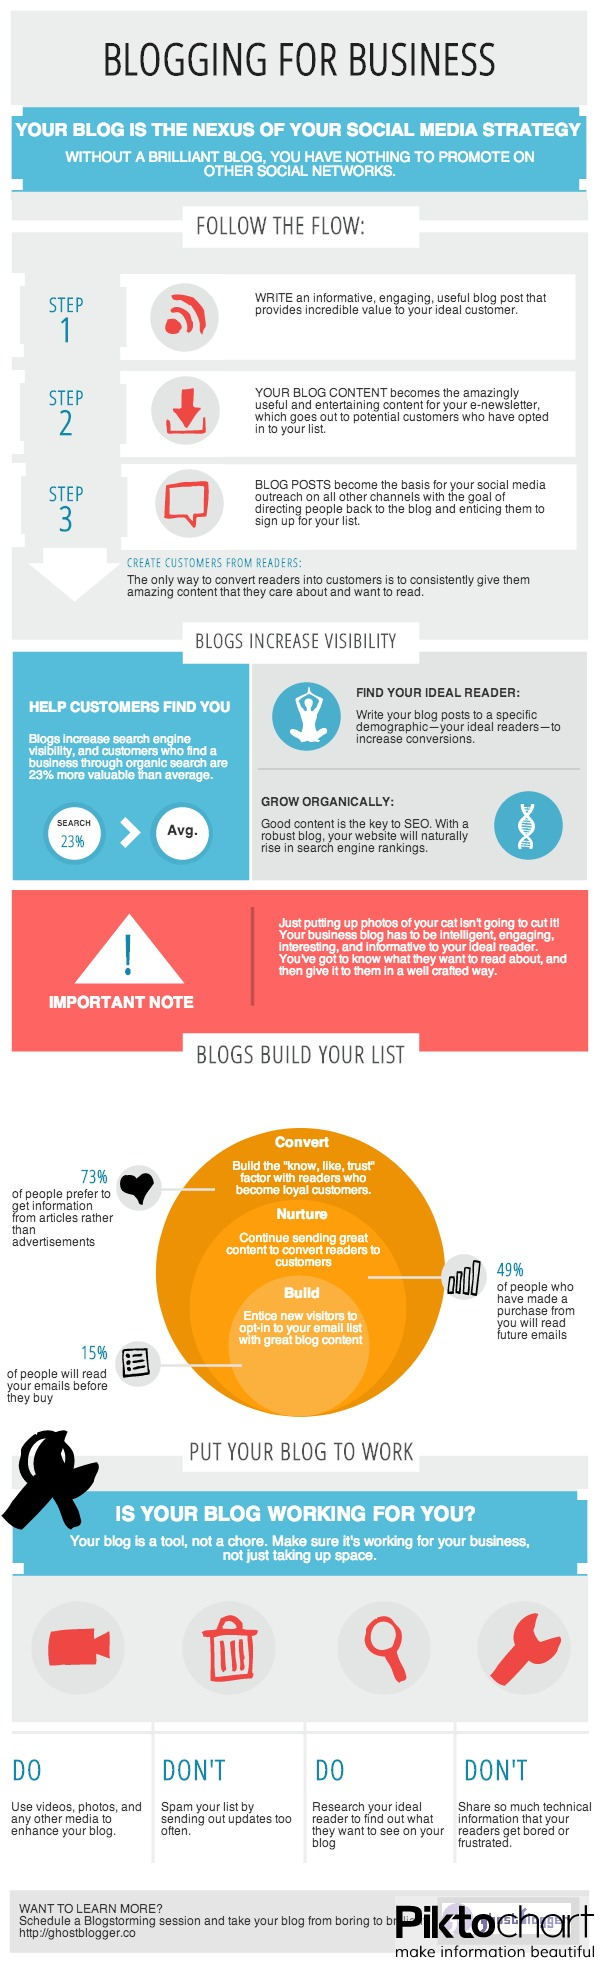 Blogs are the nexus of your social media strategy.